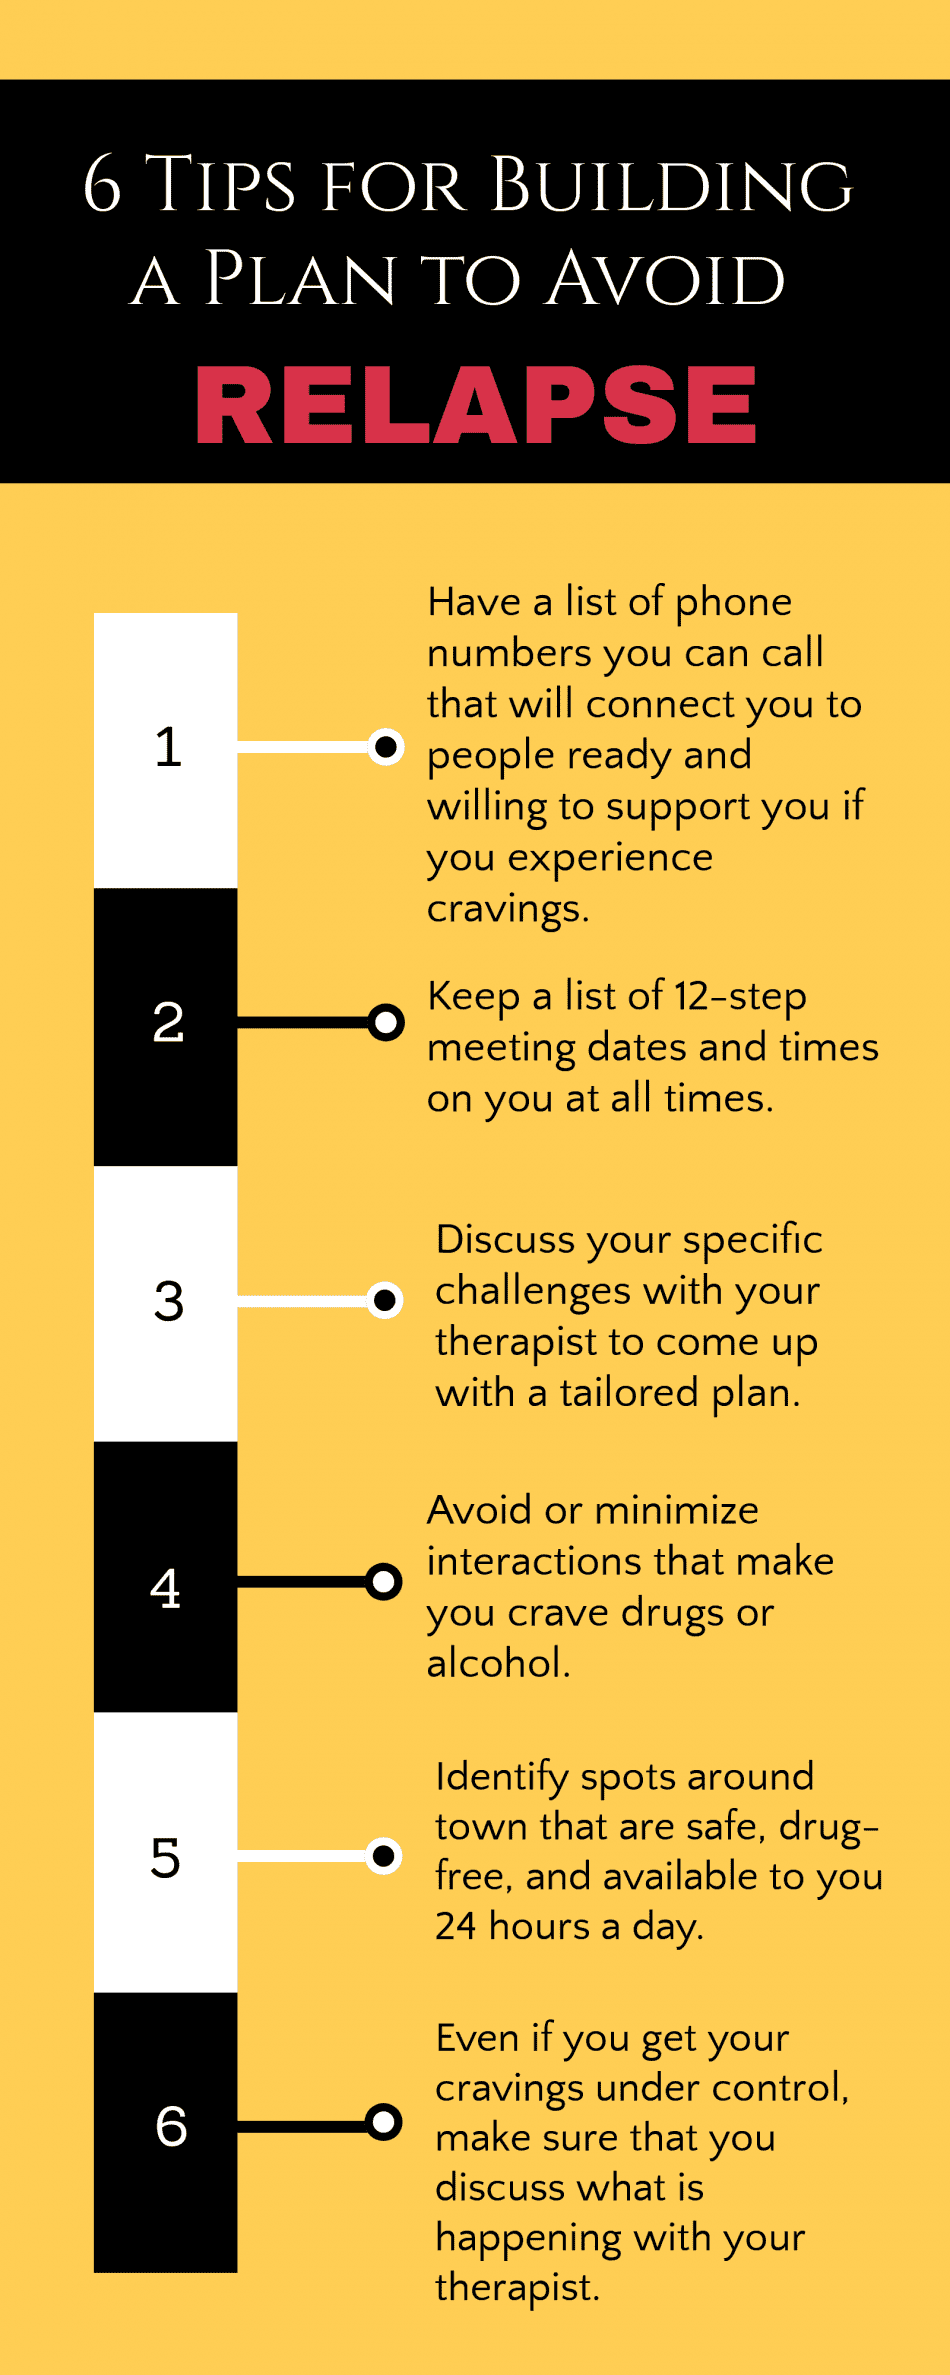 infographic on tips for building a plan to avoid relapse